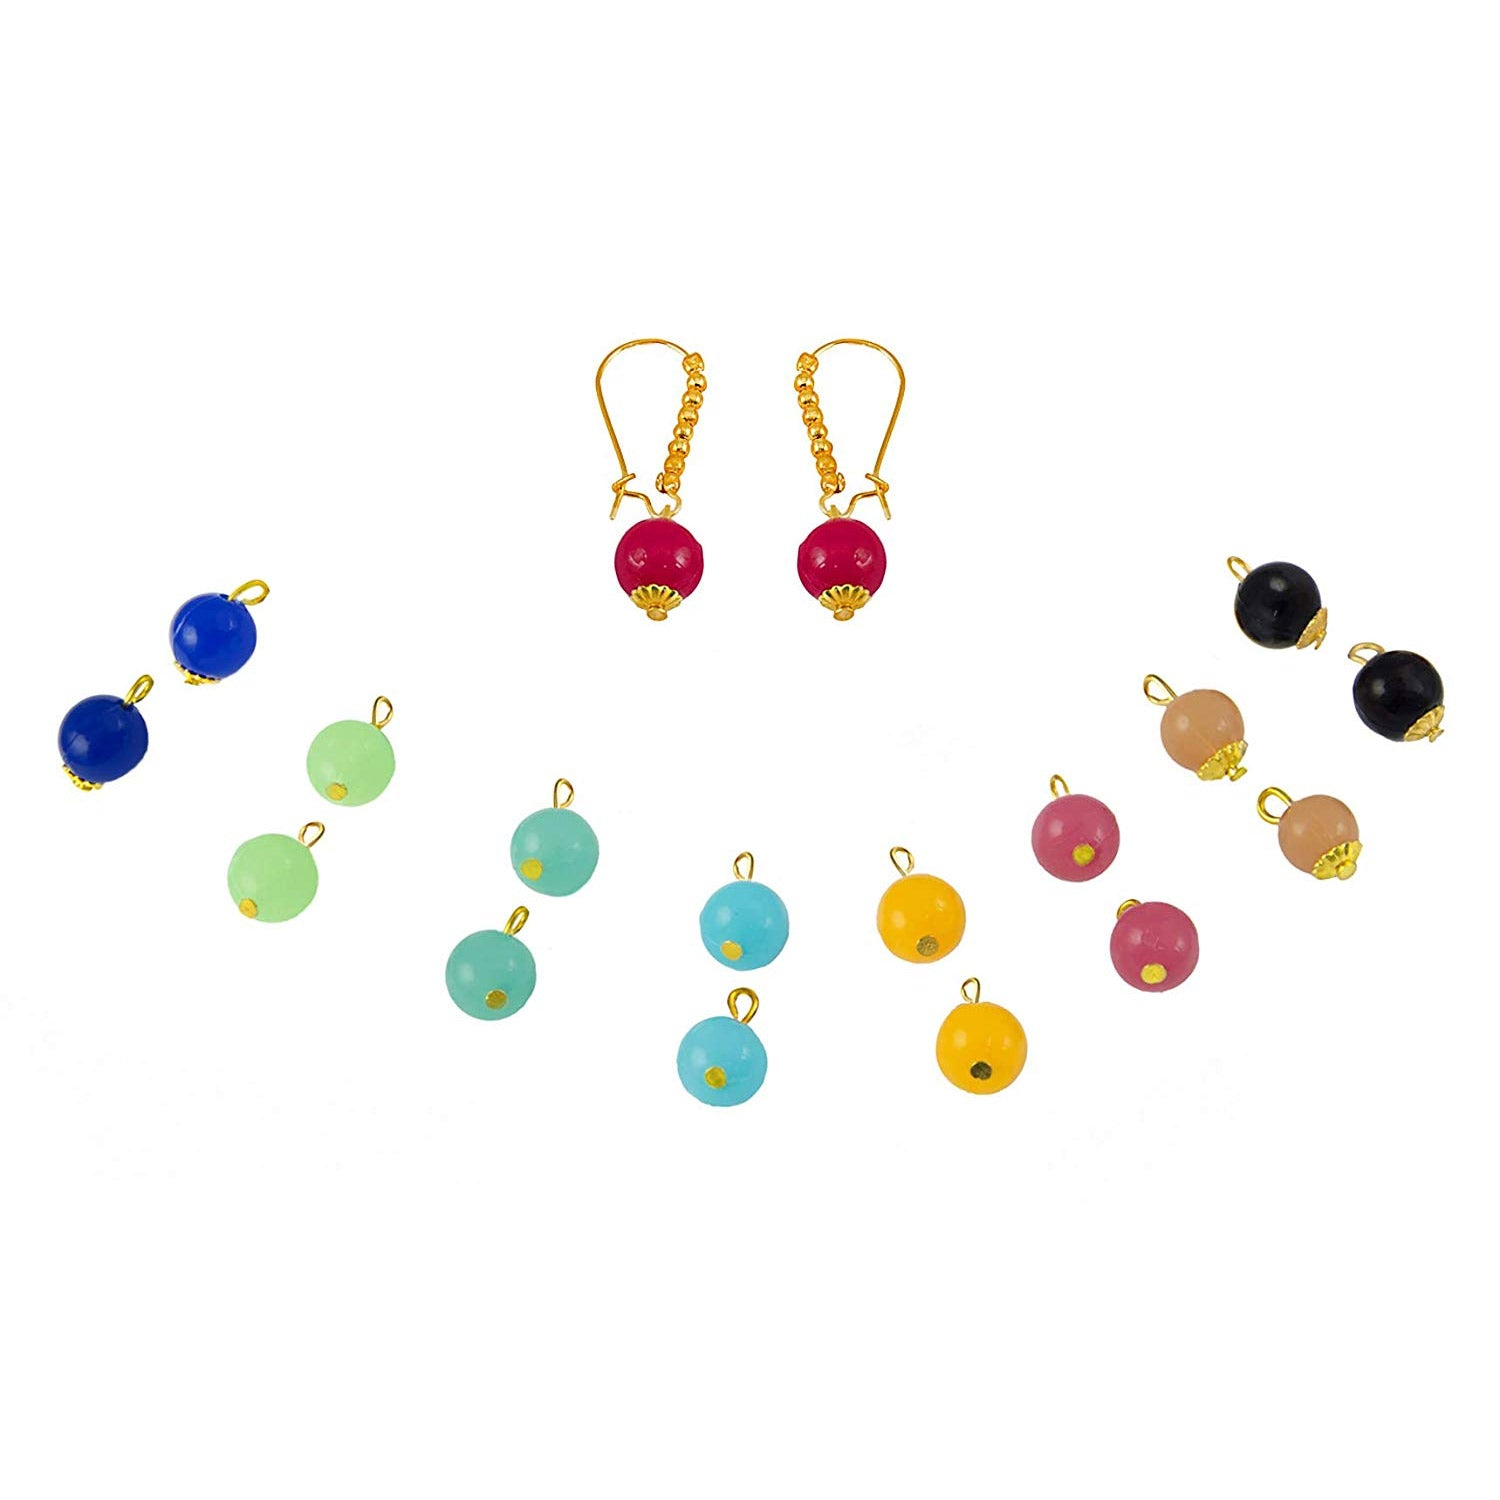 JFL - Jewellery for Less Traditional Ethnic Fusion 1 g Gold Plated Changeable 9 in 1 Multicolour Bead Earrings for Women